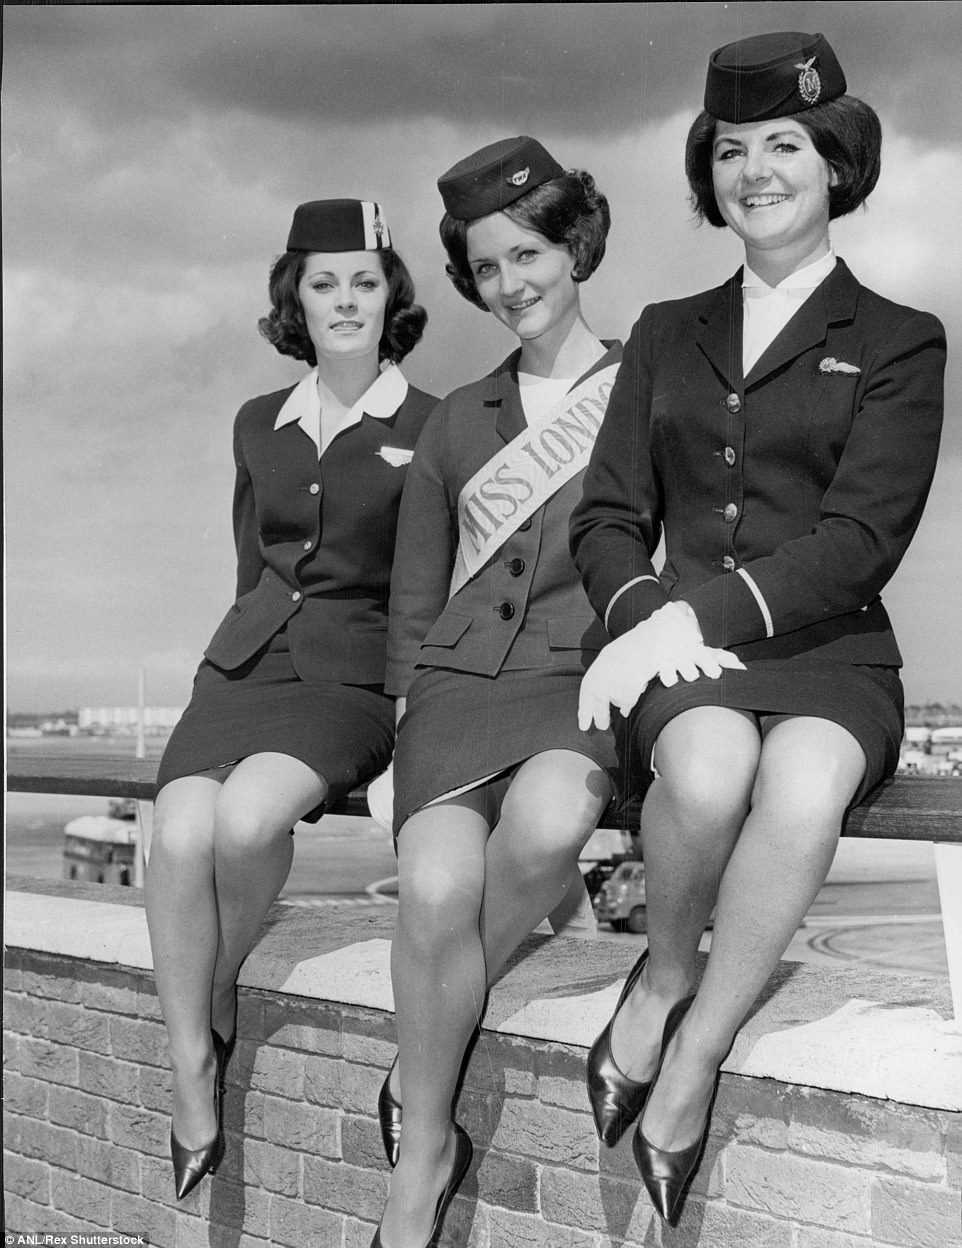 Pat Till Twa Air Hostess Who Was Voted Miss Heathrow Airport 1964 With 2nd Place (left) Christine Longthorp, 20, and Linda Stafford, 21